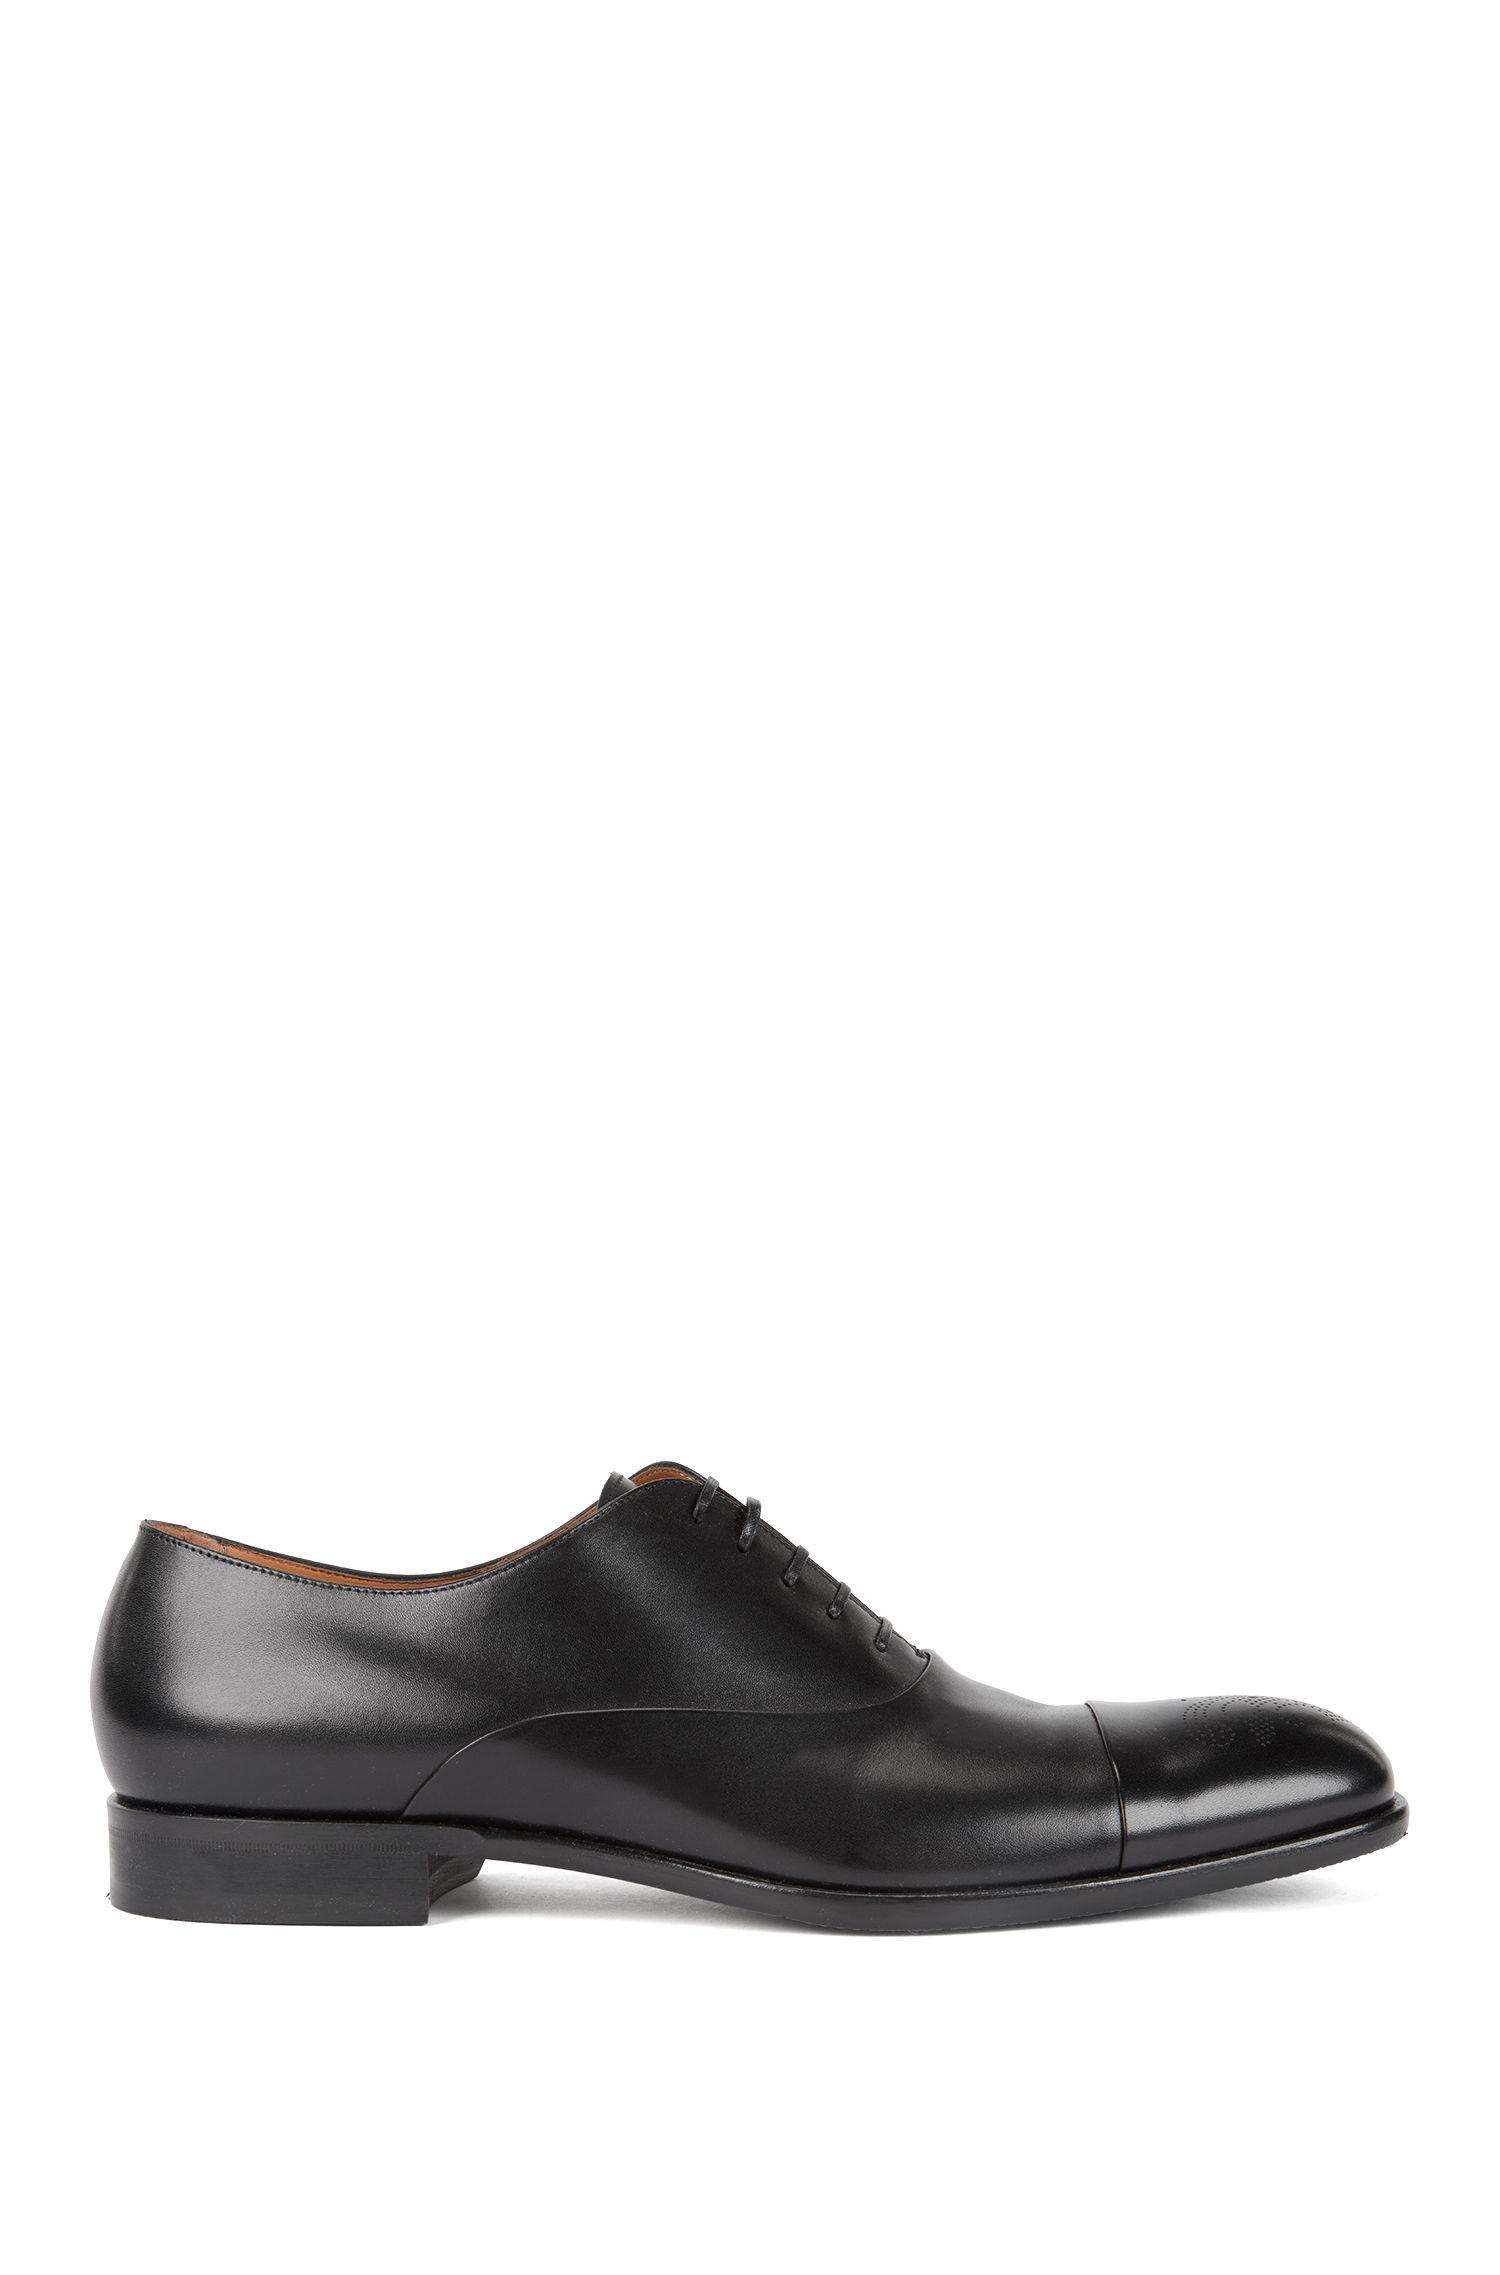 Burnished-leather Oxford shoes with laser-cut brogue pattern, Black